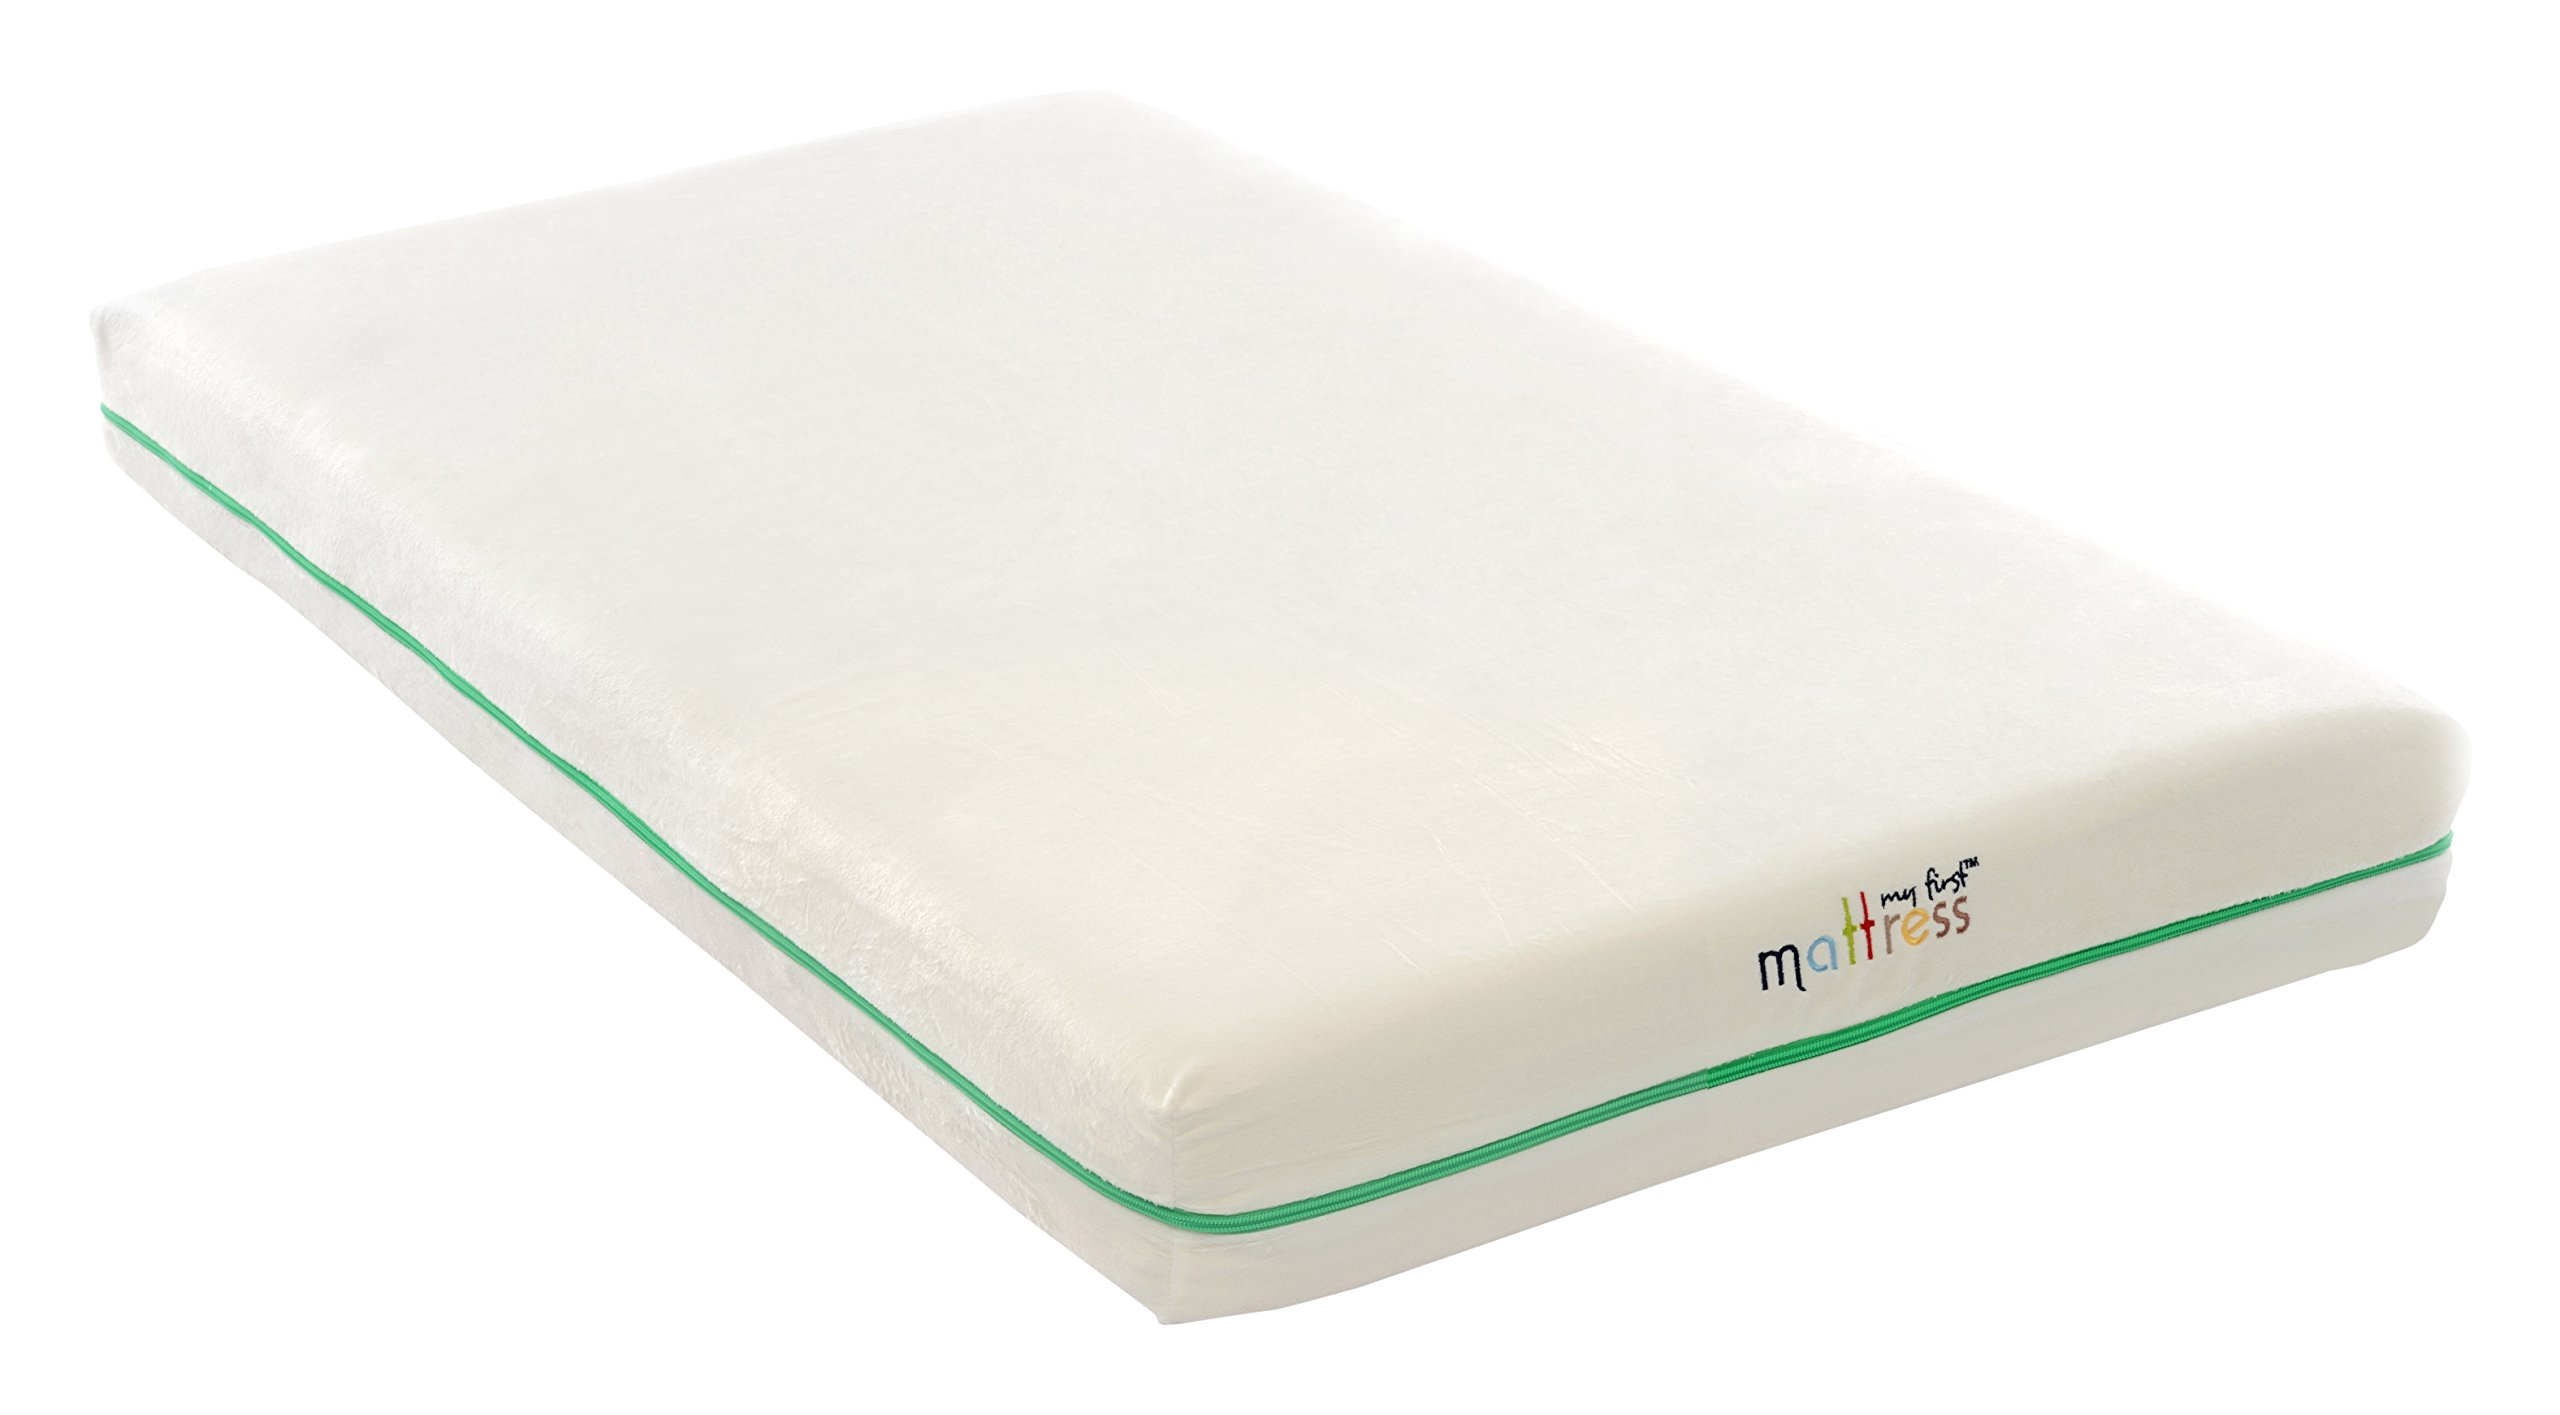 My First Crib Mattress and Toddler Bed Mattress Premium Memory Foam Crib and Toddler Bed Mattress Combination